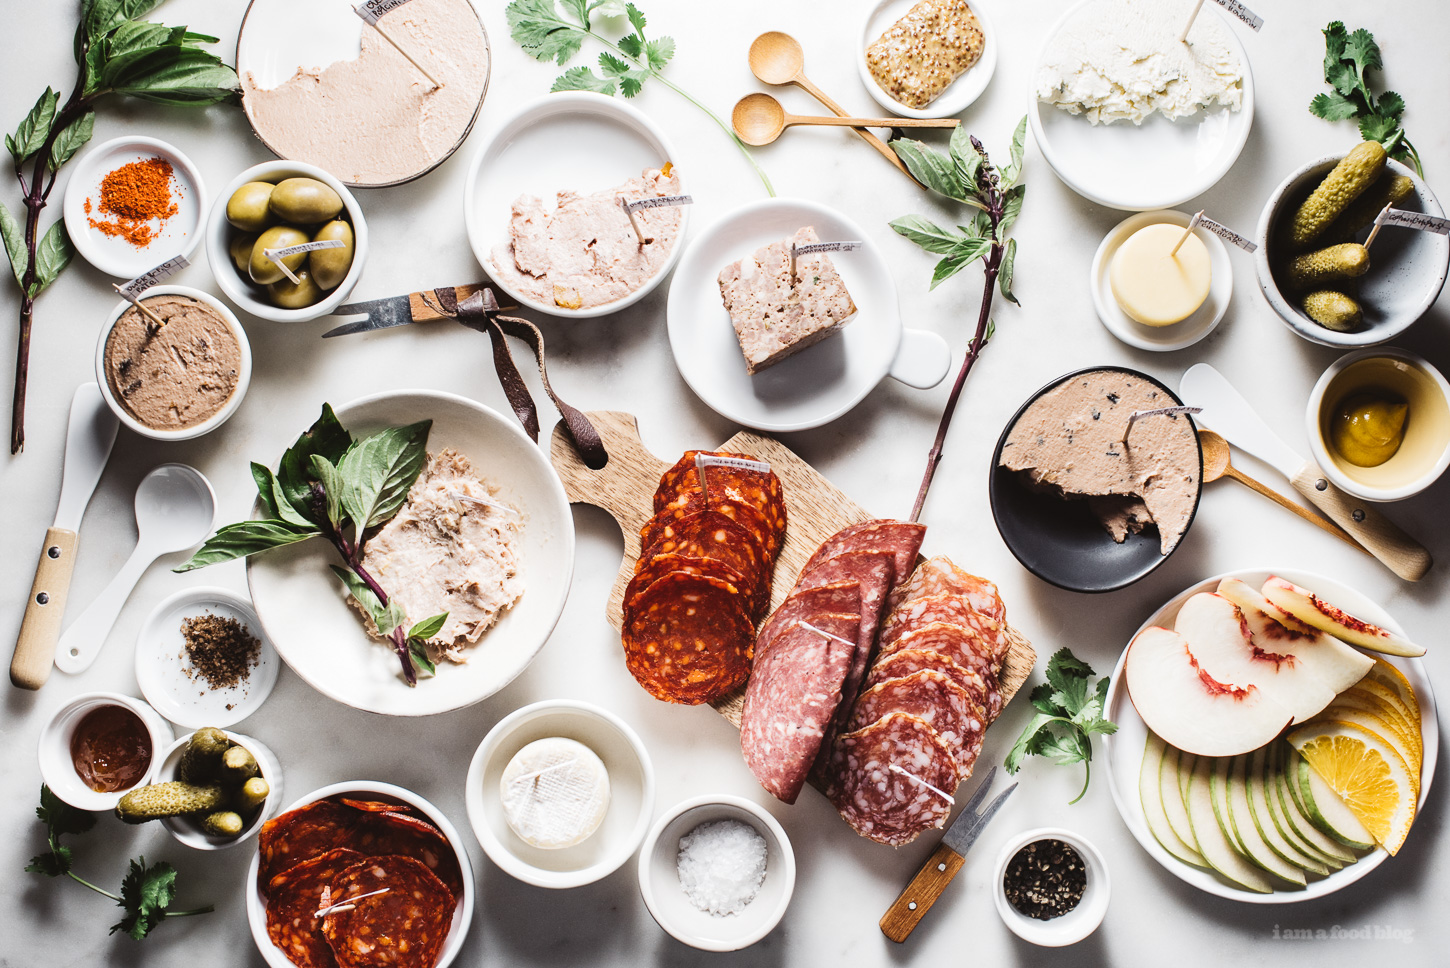 charcuterie at home - www.iamafoodblog.com